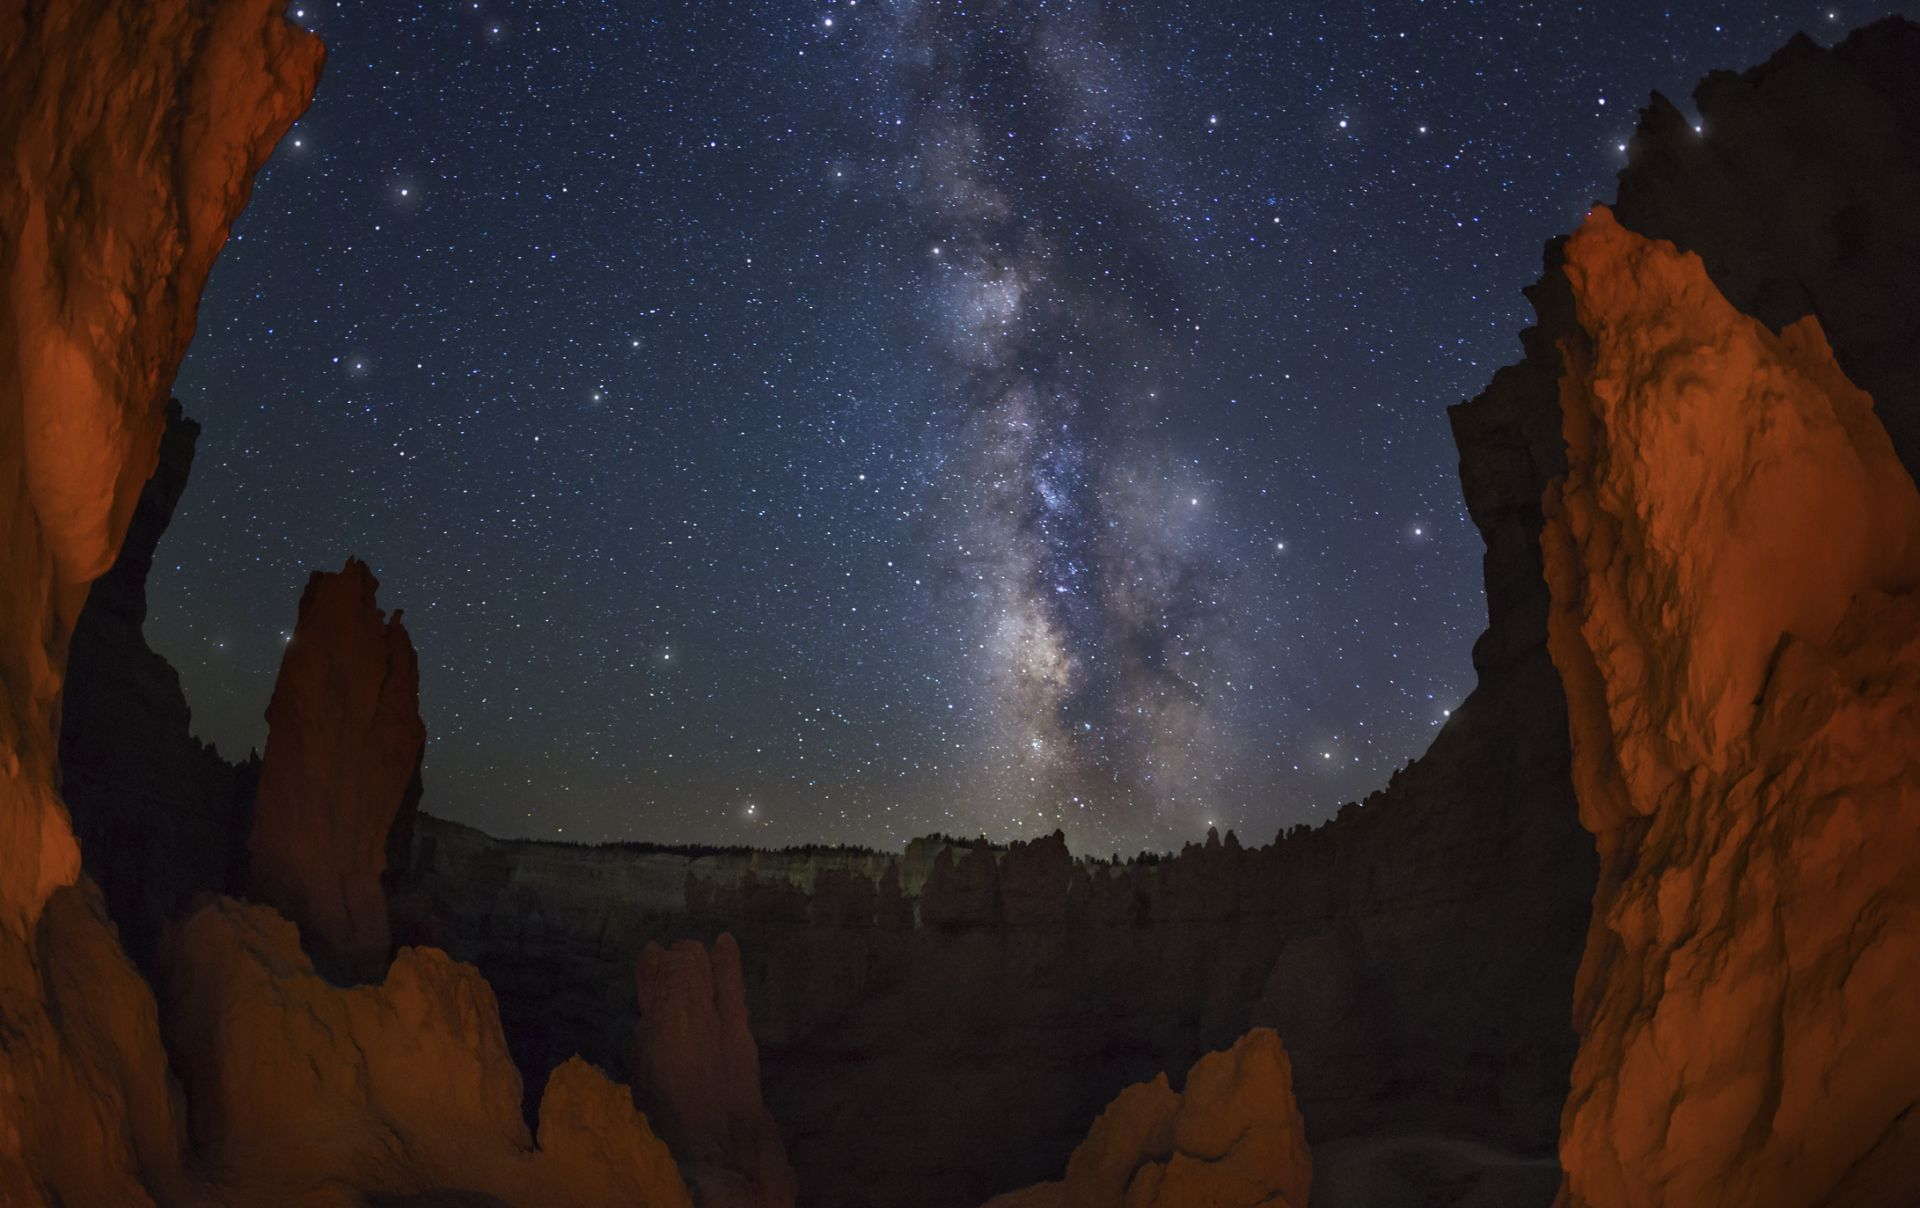 https://www.americanway.com/public/uploads/Bryce%20Canyon%20National%20Park%20Credit%20Getty%20Images.jpg